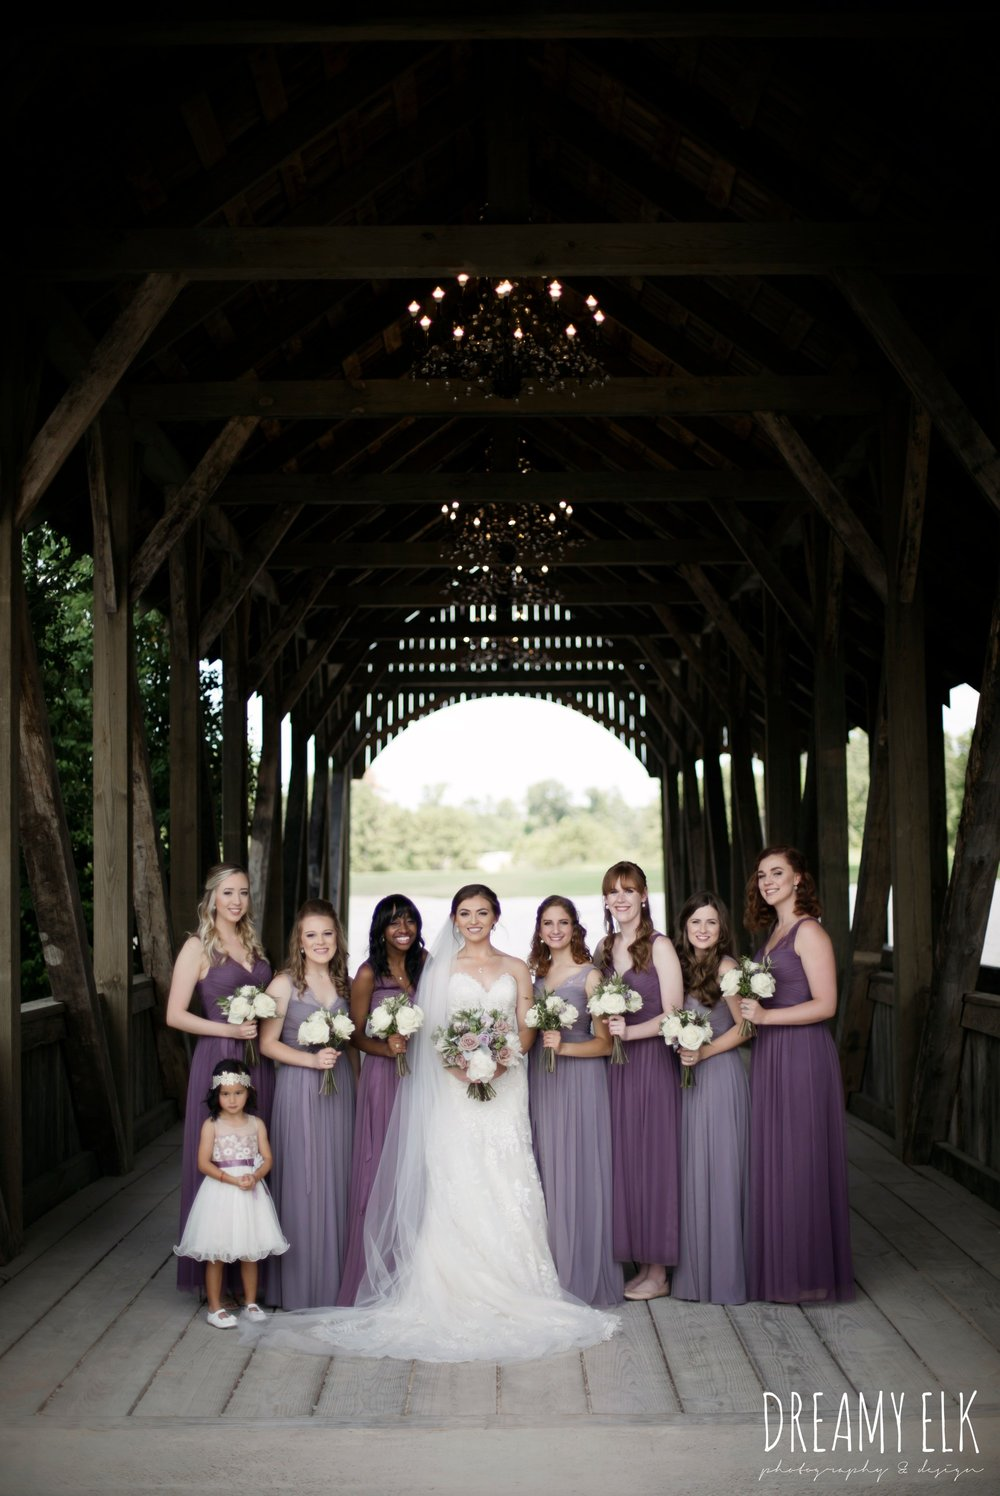 f. dellit designs, lavender and blush bouquet, bridesmaids, floor length long lavender dresses, bhldn, bride, long veil, sweetheart lace strapless fit and flare, wedding dress, wedding hair updo, wedding makeup, summer july wedding, lavender, big sky barn, houston, texas, austin wedding photographer {dreamy elk photography and design}